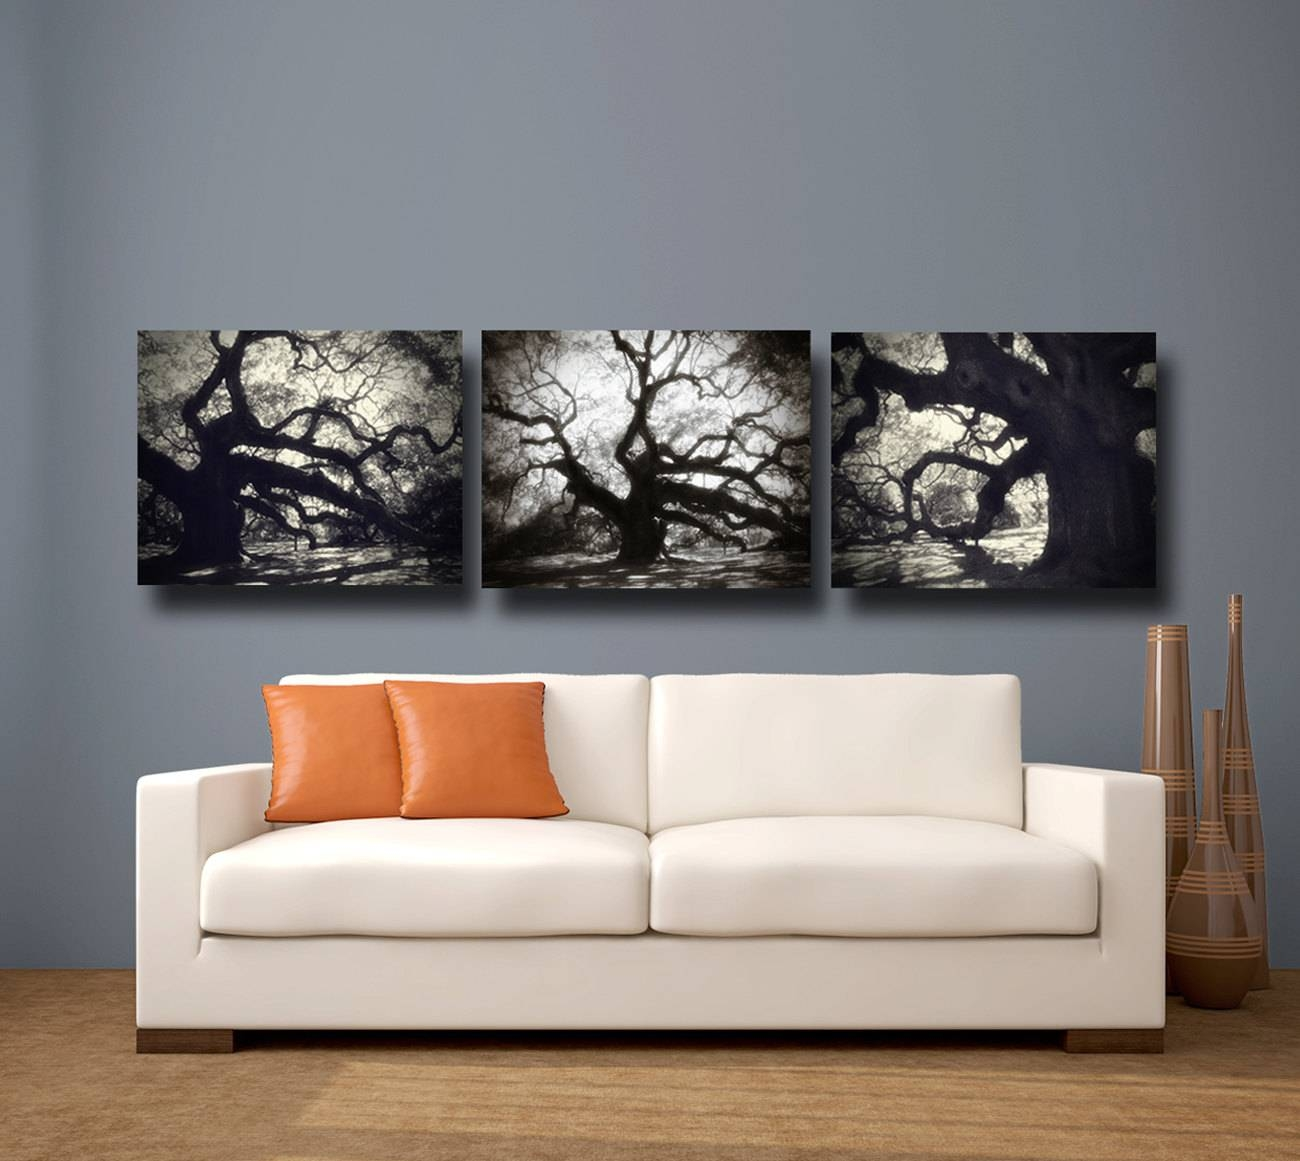 Wall Canvas Art Ideas Black And White L Lata | Targovci Throughout Current Black And White Wall Art Sets (View 19 of 20)